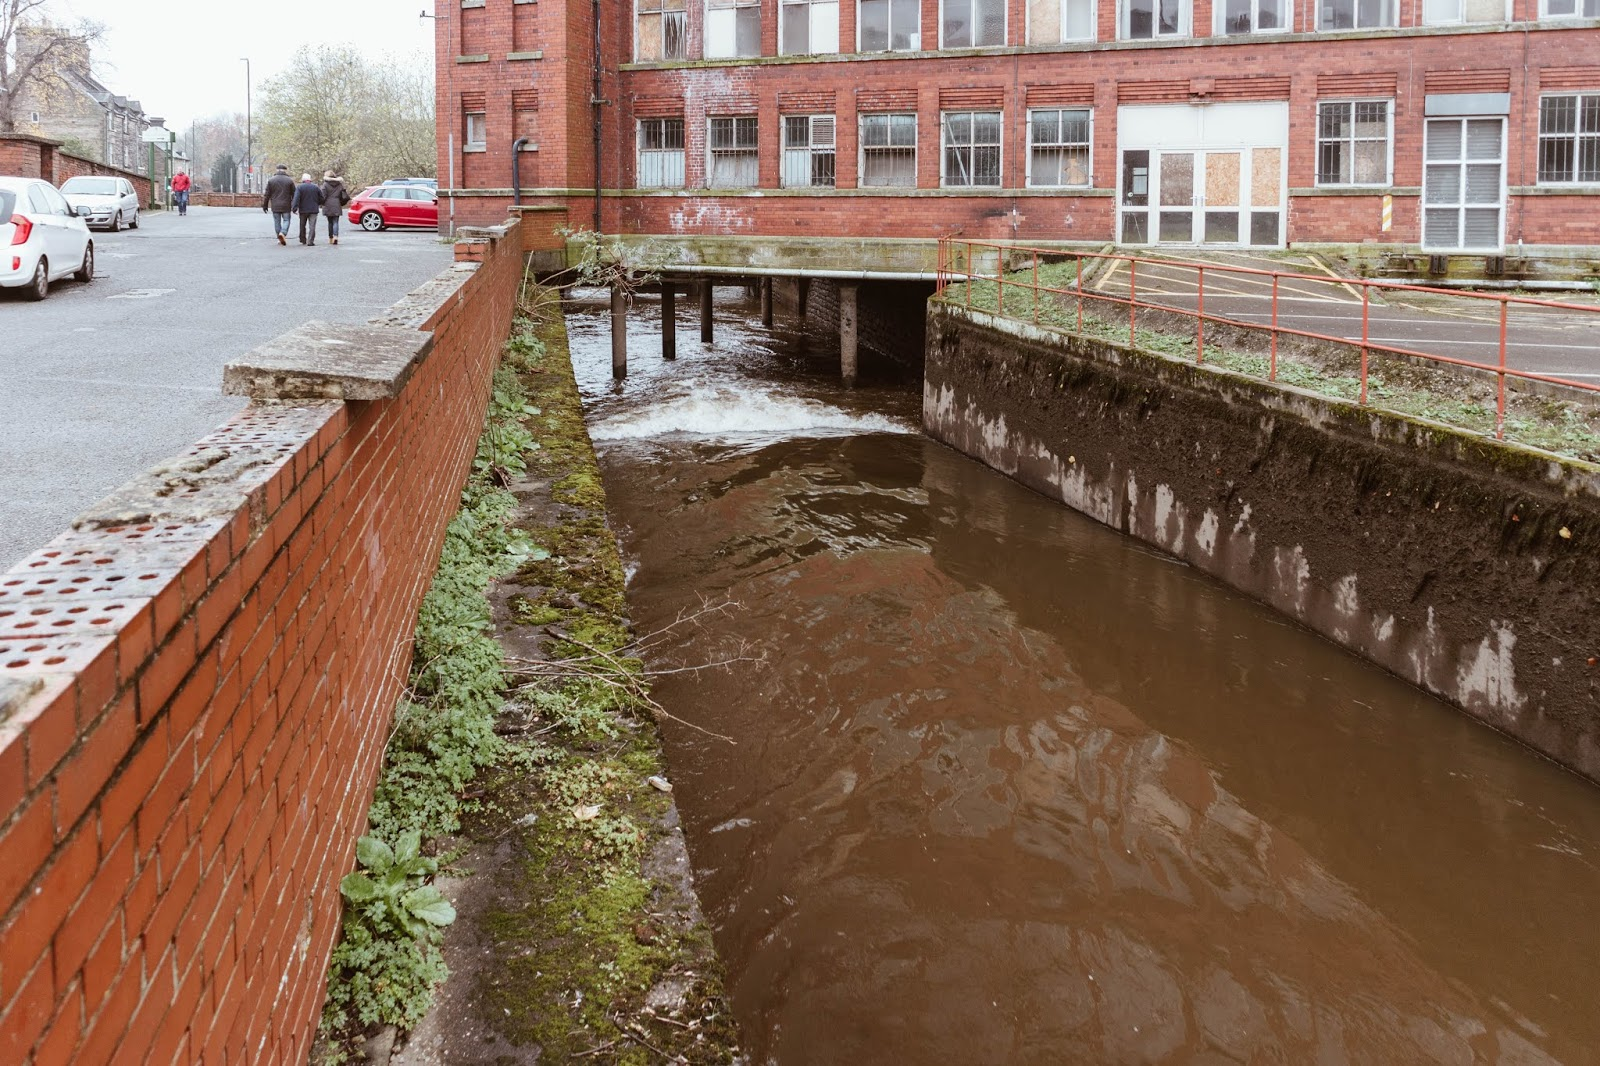 Belper Floods, 2019 Derbyshire Floods, Flooding, Belper River Gardens, Blog, Belper Mill, North Mill, Derbyshire Flooding, East Midlands Flooding, Midlands Flooding,